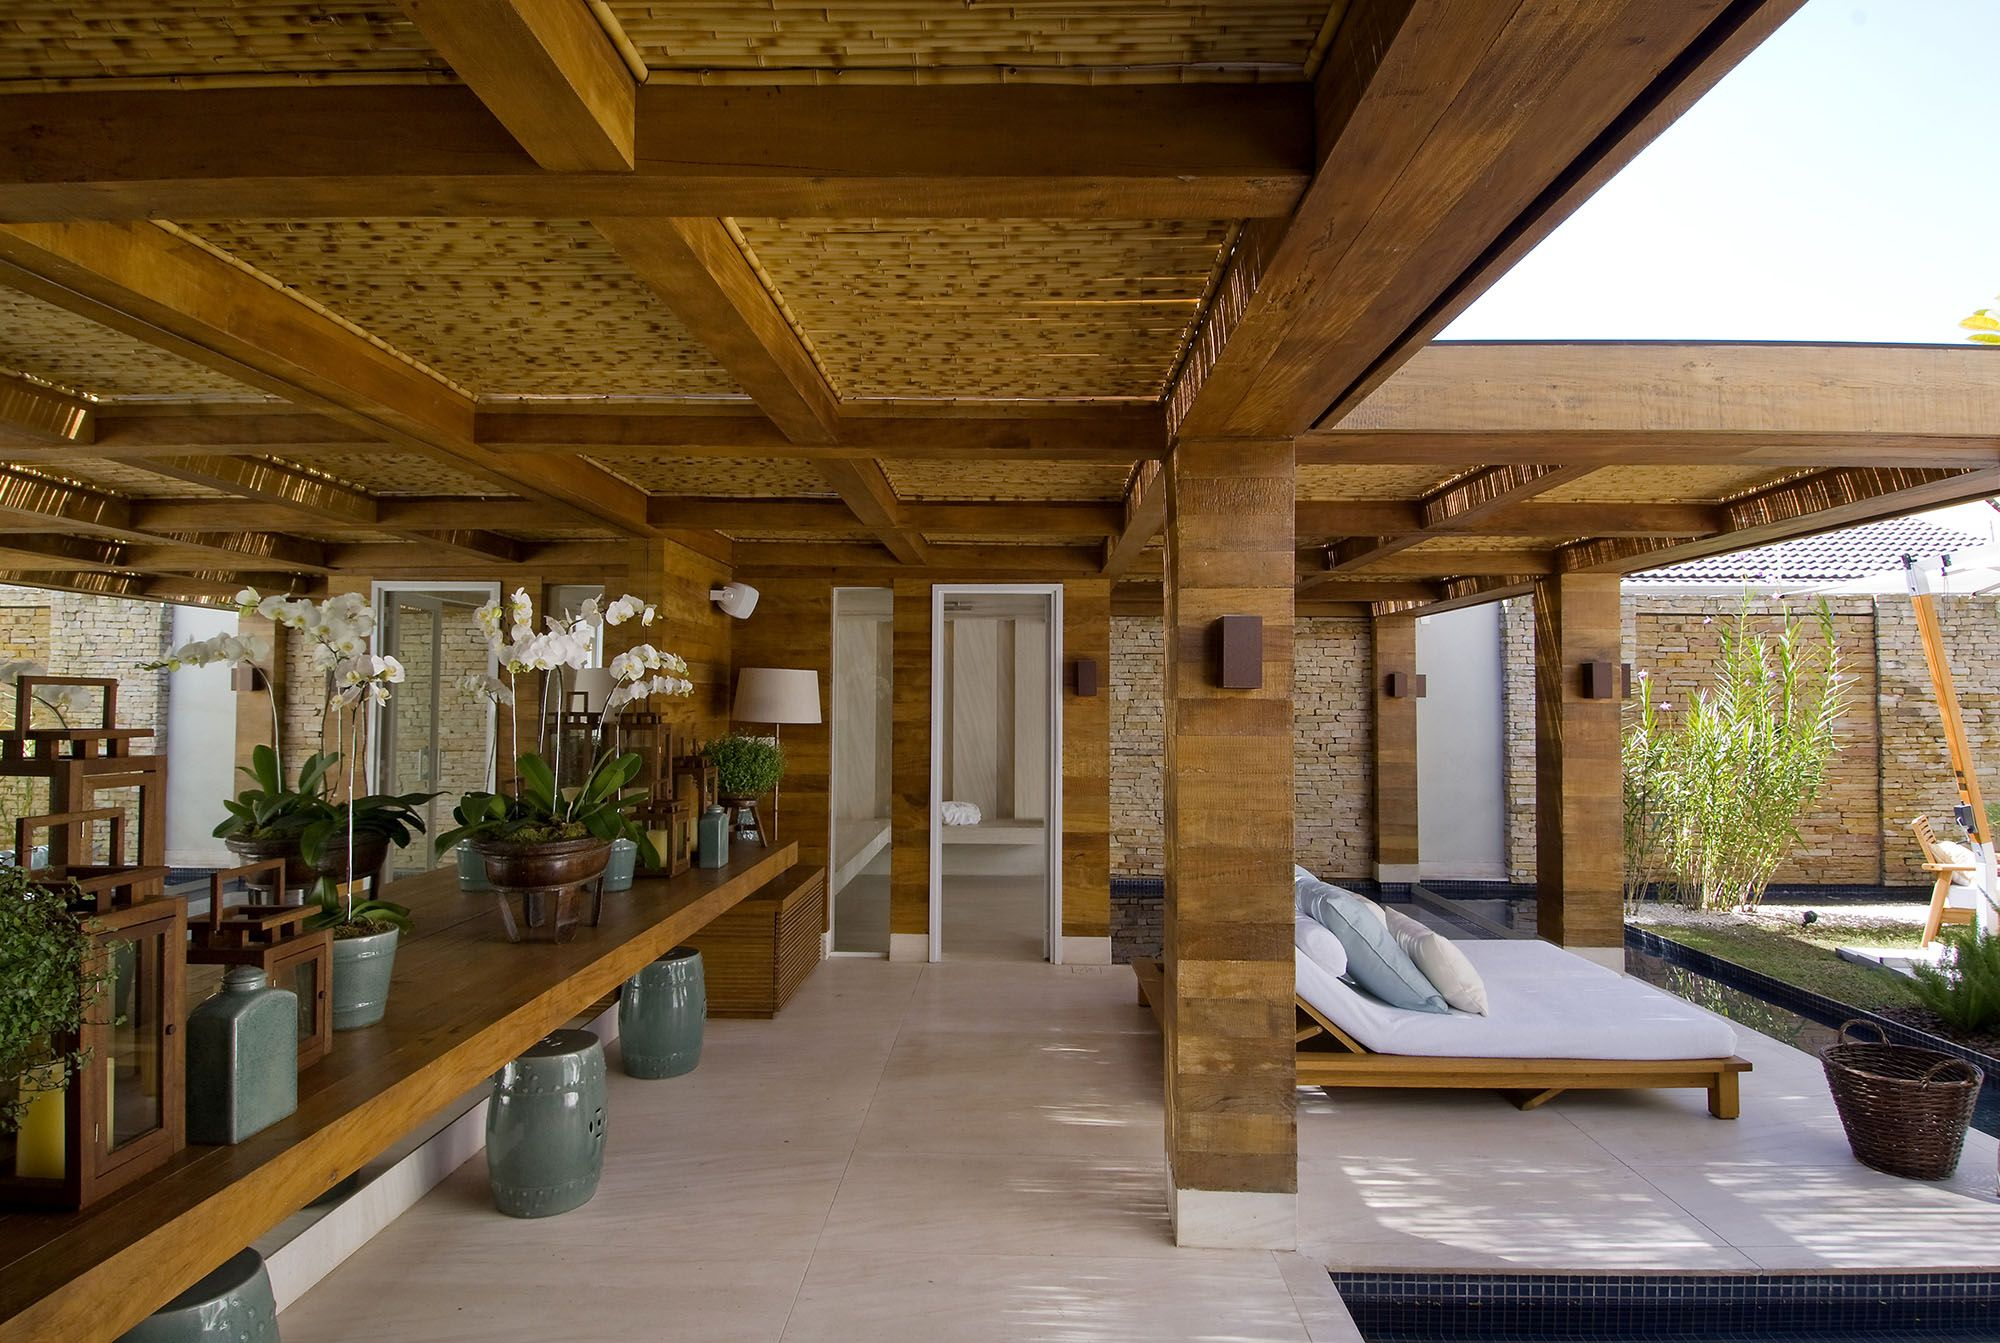 Bamboo panel ceiling in a home in Brazil designed by Debora Aguiar Arquitetos